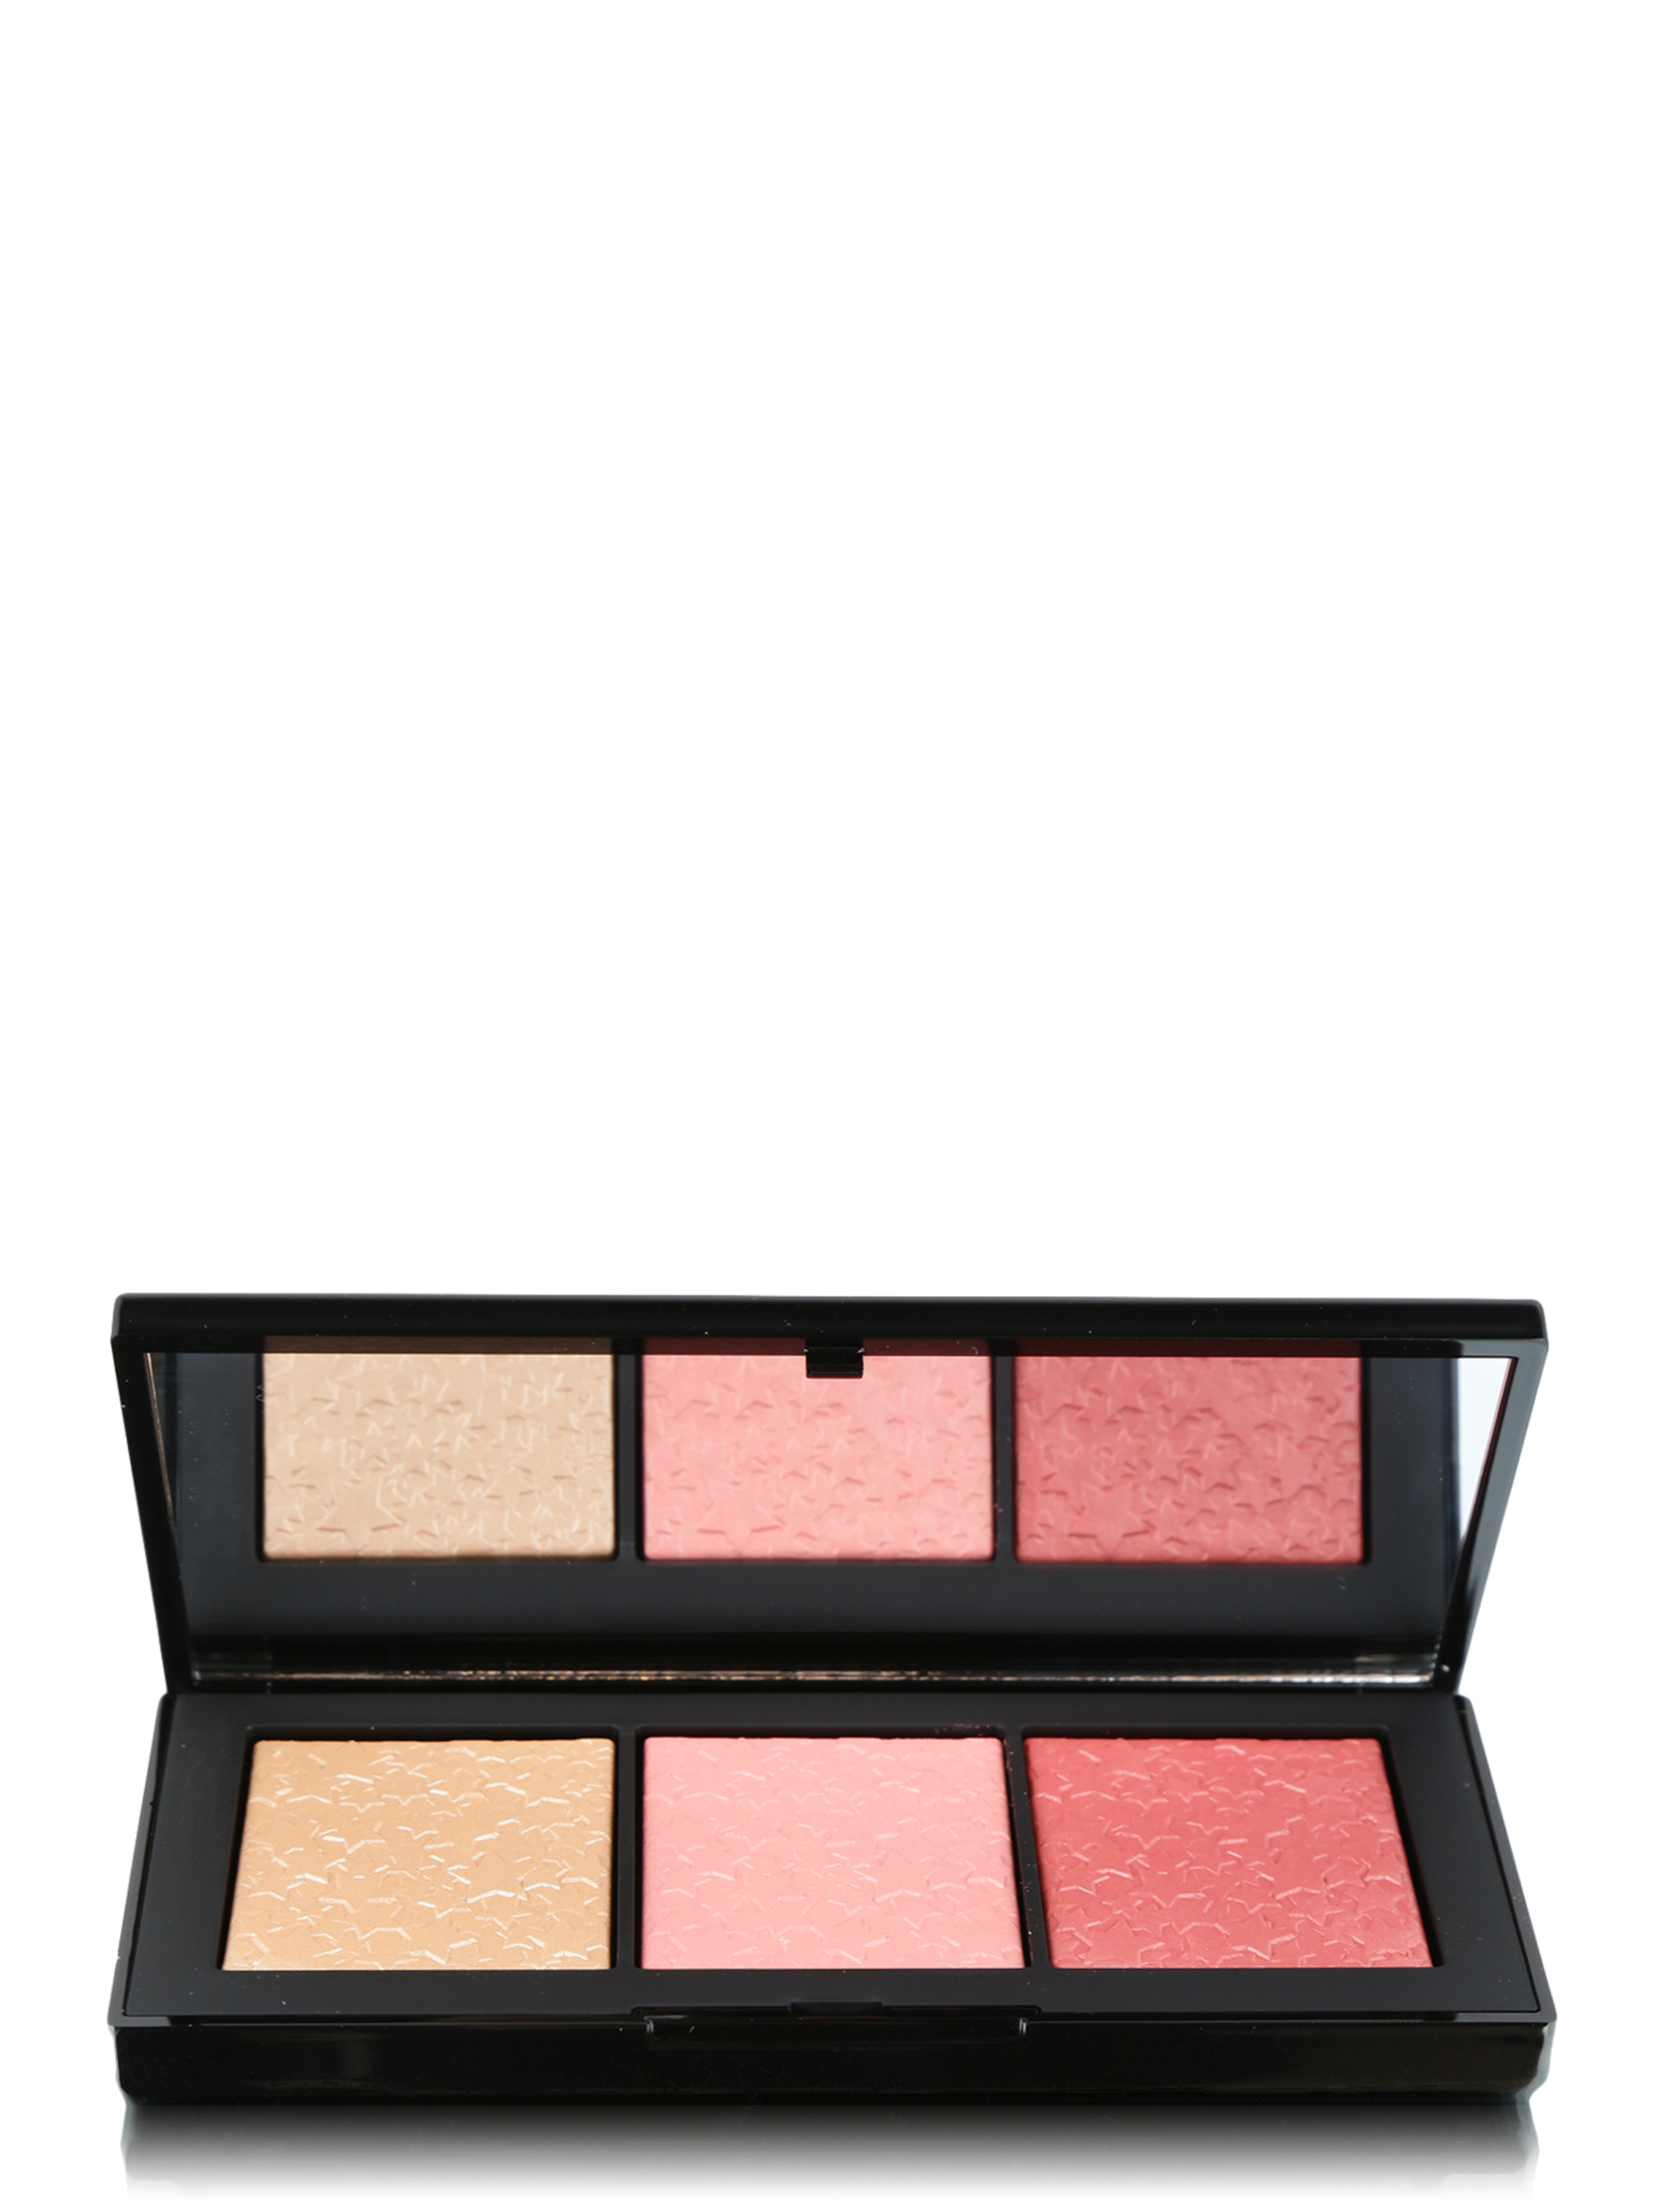 Палетка для скул STAR SCENE CHEEK PALETTE 3,5 г х 3 - Общий вид